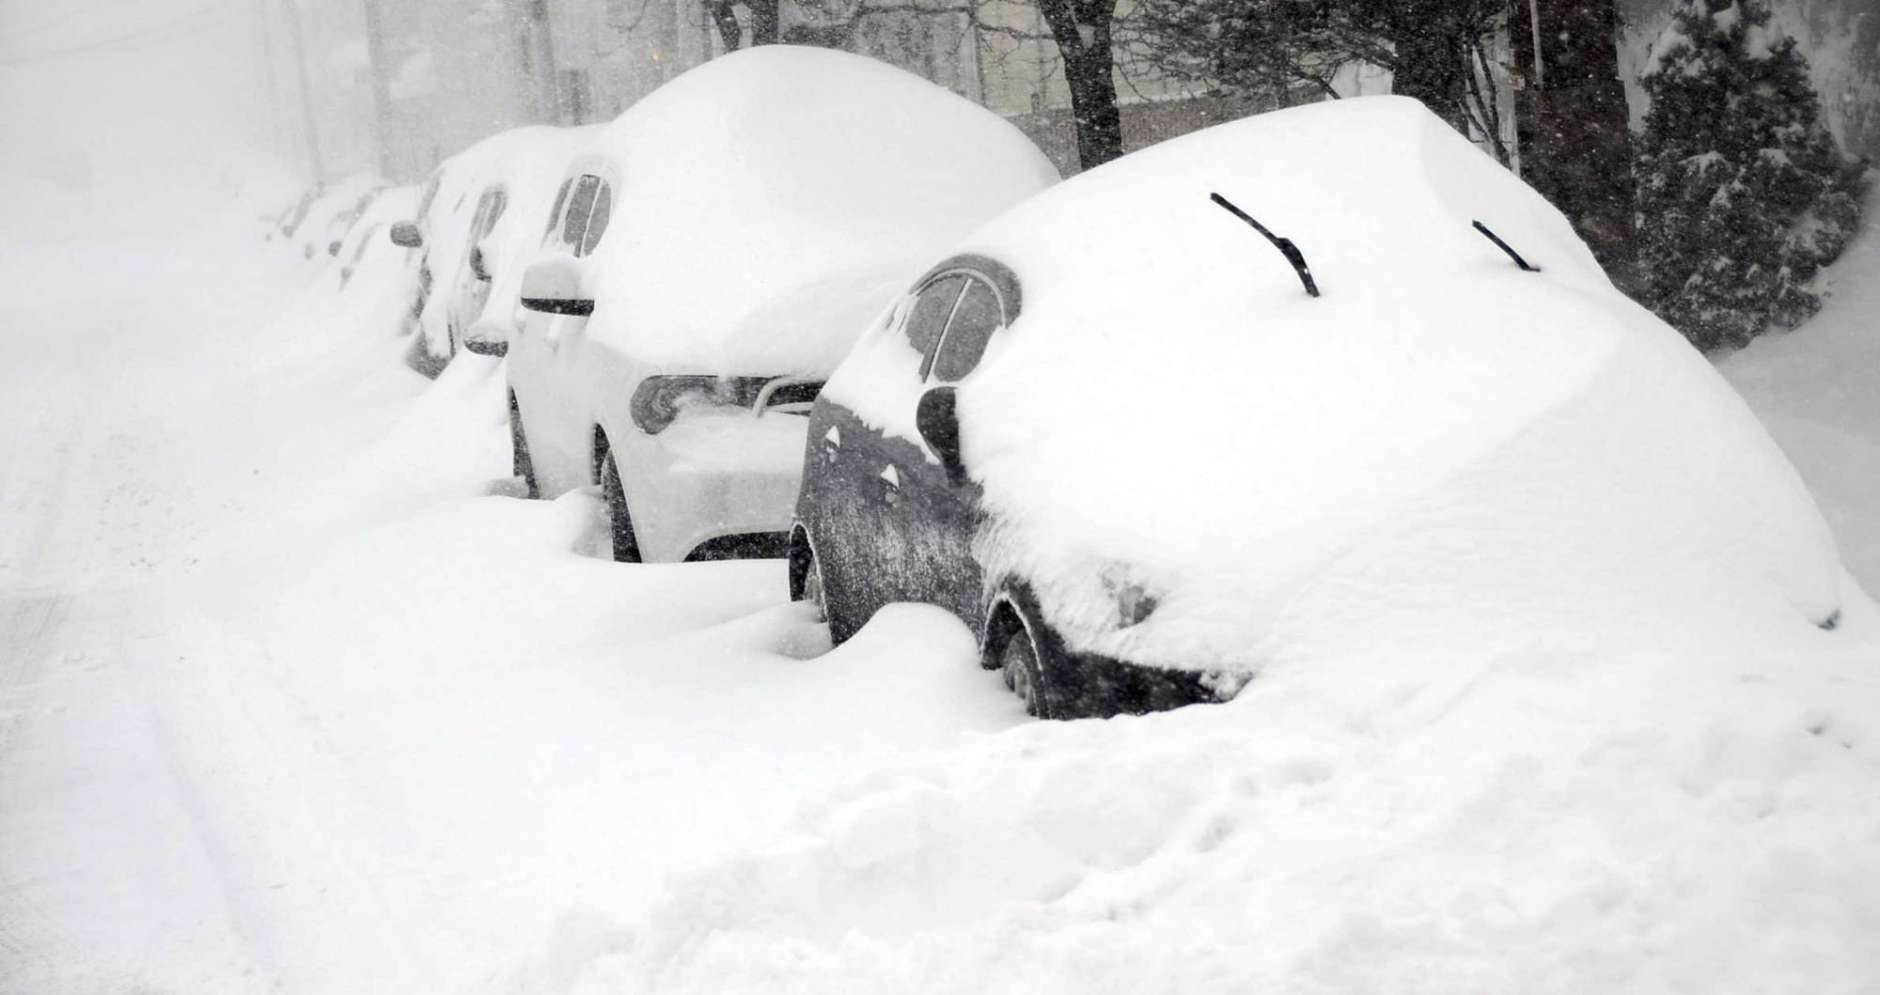 Cars parked on East Green Street in Hazleton, Pa., are buried as heavy snowfall moves through the area leaving more than a foot of snow, Tuesday, March 14, 2017. More than 30 inches of snow is expected to accumulate before the winter storm moves out. (Ellen F. O'Connell/Hazleton Standard-Speaker via AP)